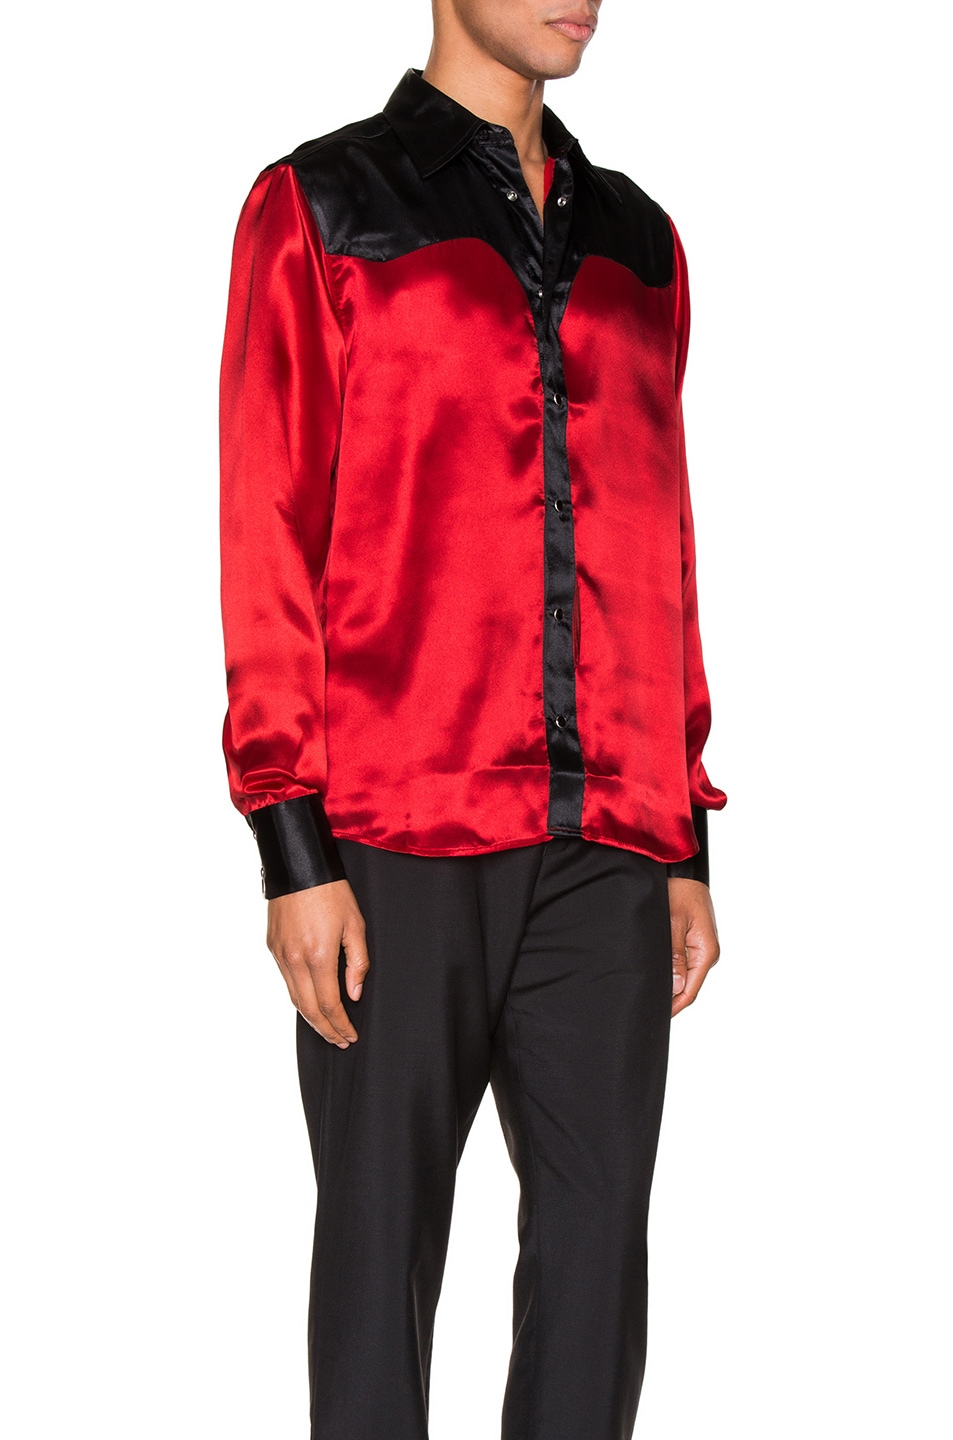 Image 2 of SSS World Corp Western Shirt in Black & Red